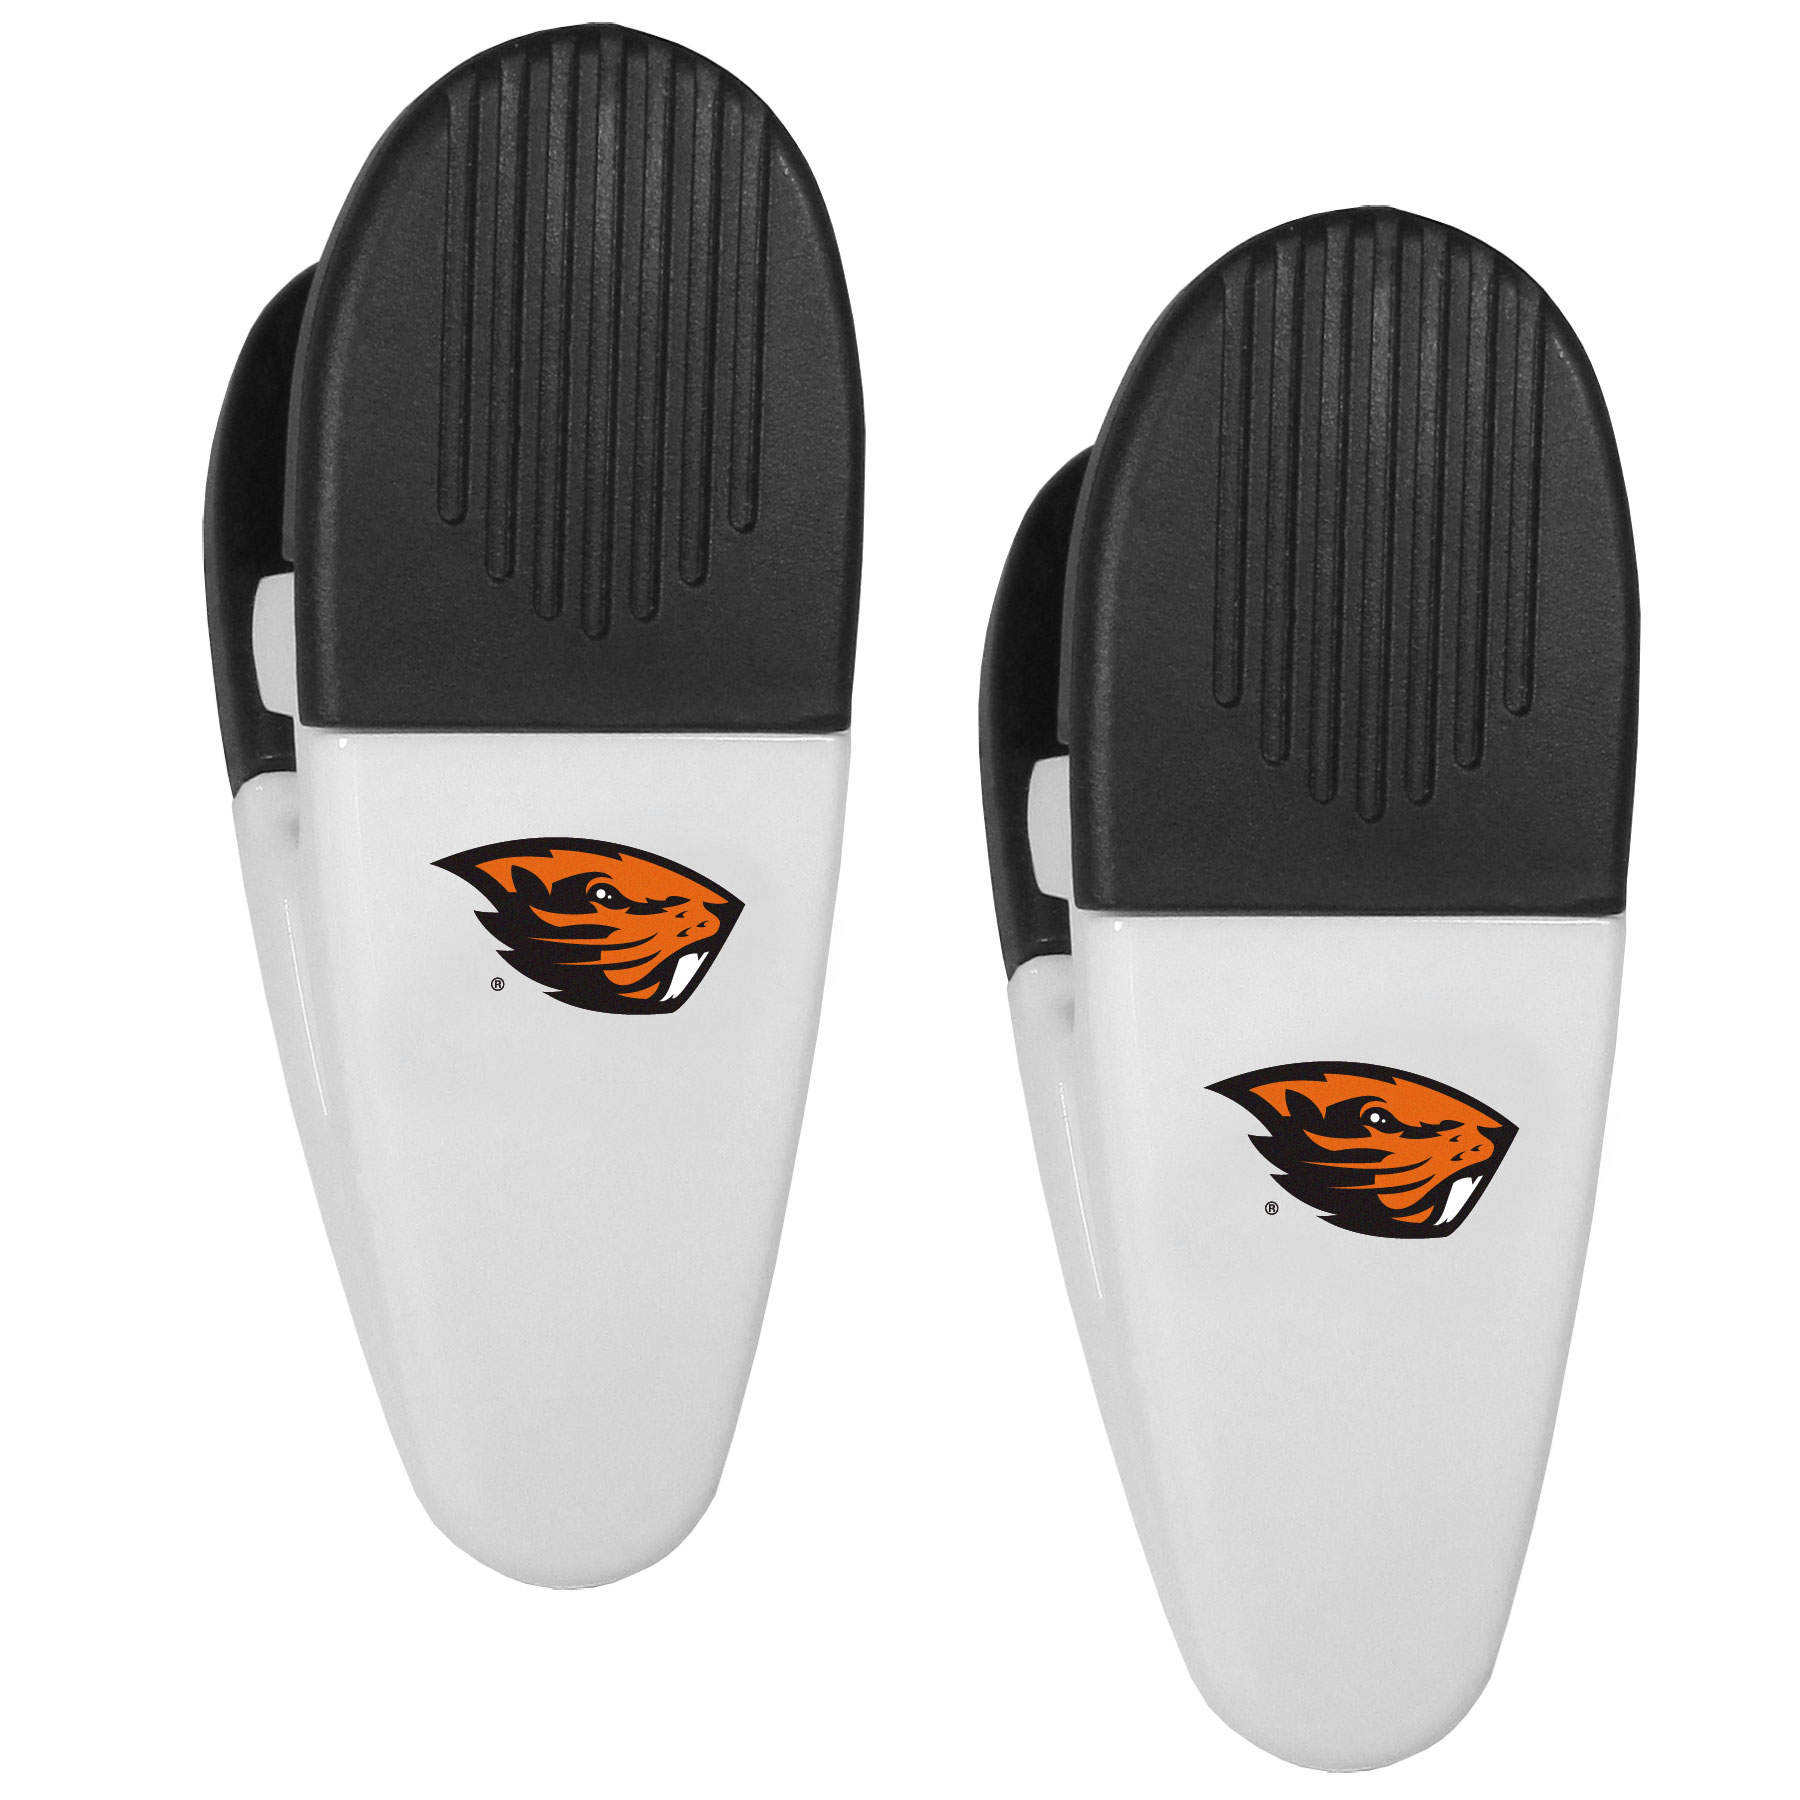 Oregon St. Beavers Mini Chip Clip Magnets, 2 pk - Our Oregon St. Beavers chip clip magnets feature a crisp team logo on the front of the clip. The clip is perfect for sealing chips for freshness and with the powerful magnet on the back it can be used to attach notes to the fridge or hanging your child's artwork. Set of 2 magnet clips, each clip is 3.5 inches tall and 1.25 inch wide.